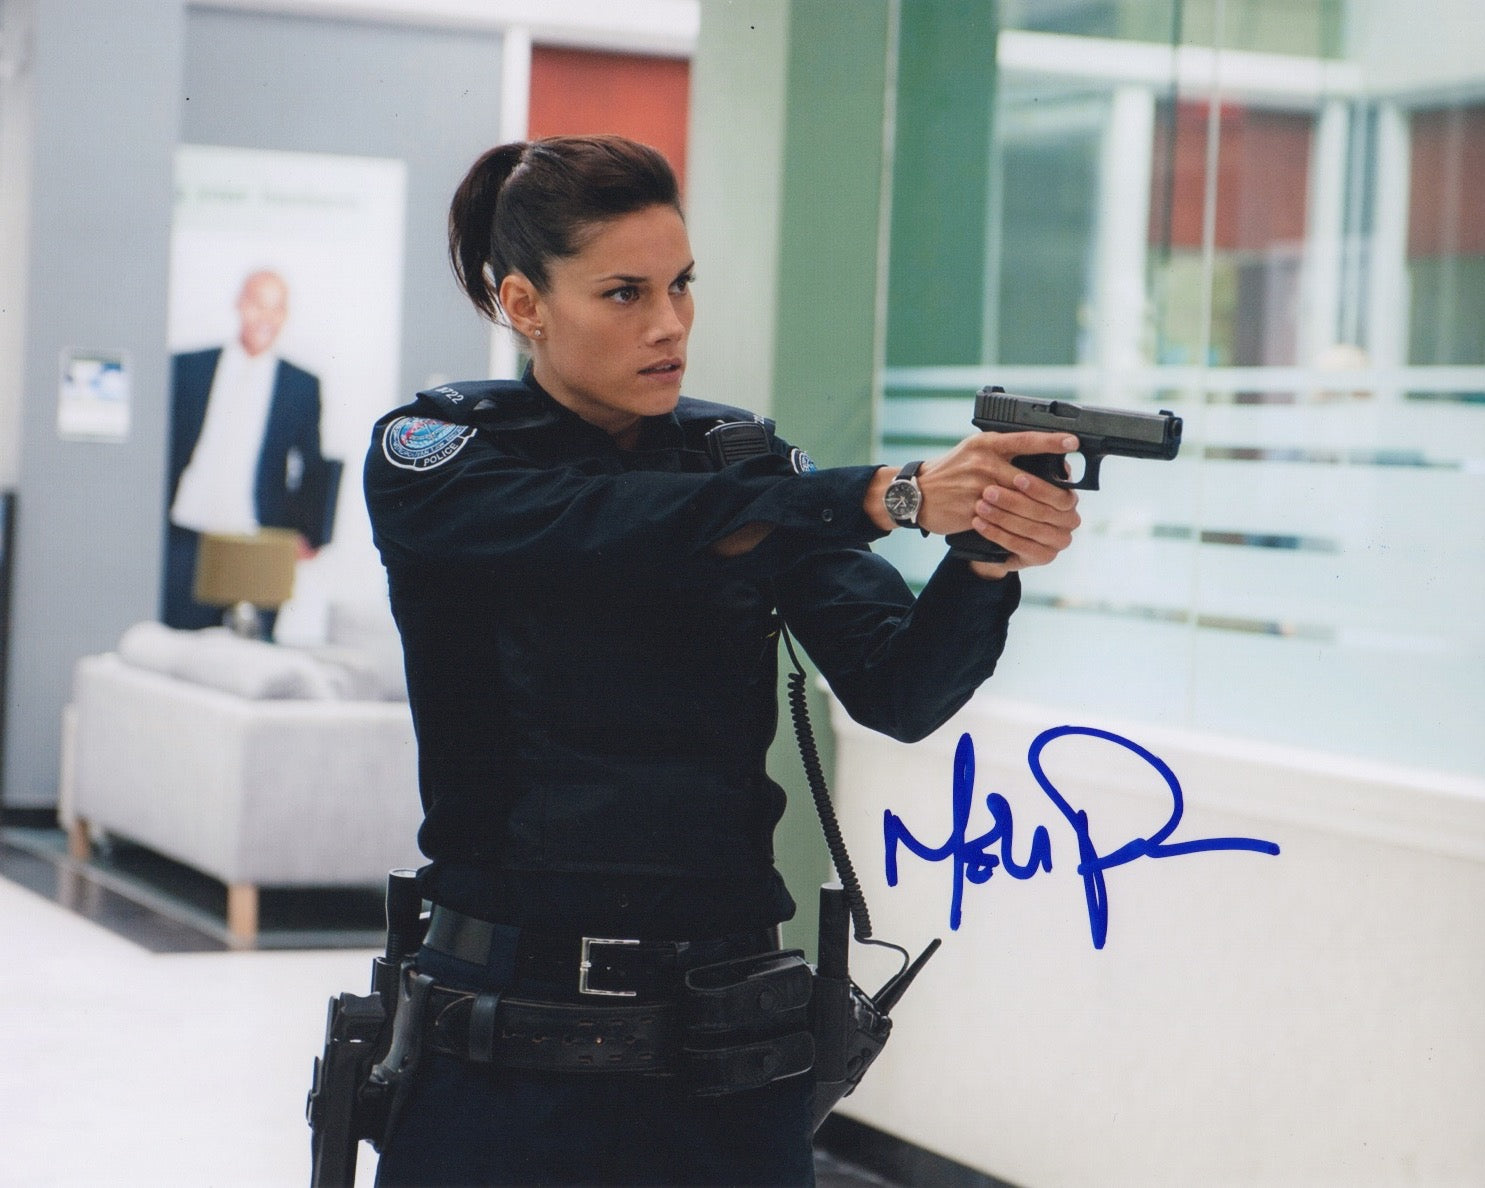 Missy Peregrym Rookie Blue Signed Autograph 8x10 Photo - Outlaw Hobbies Authentic Autographs